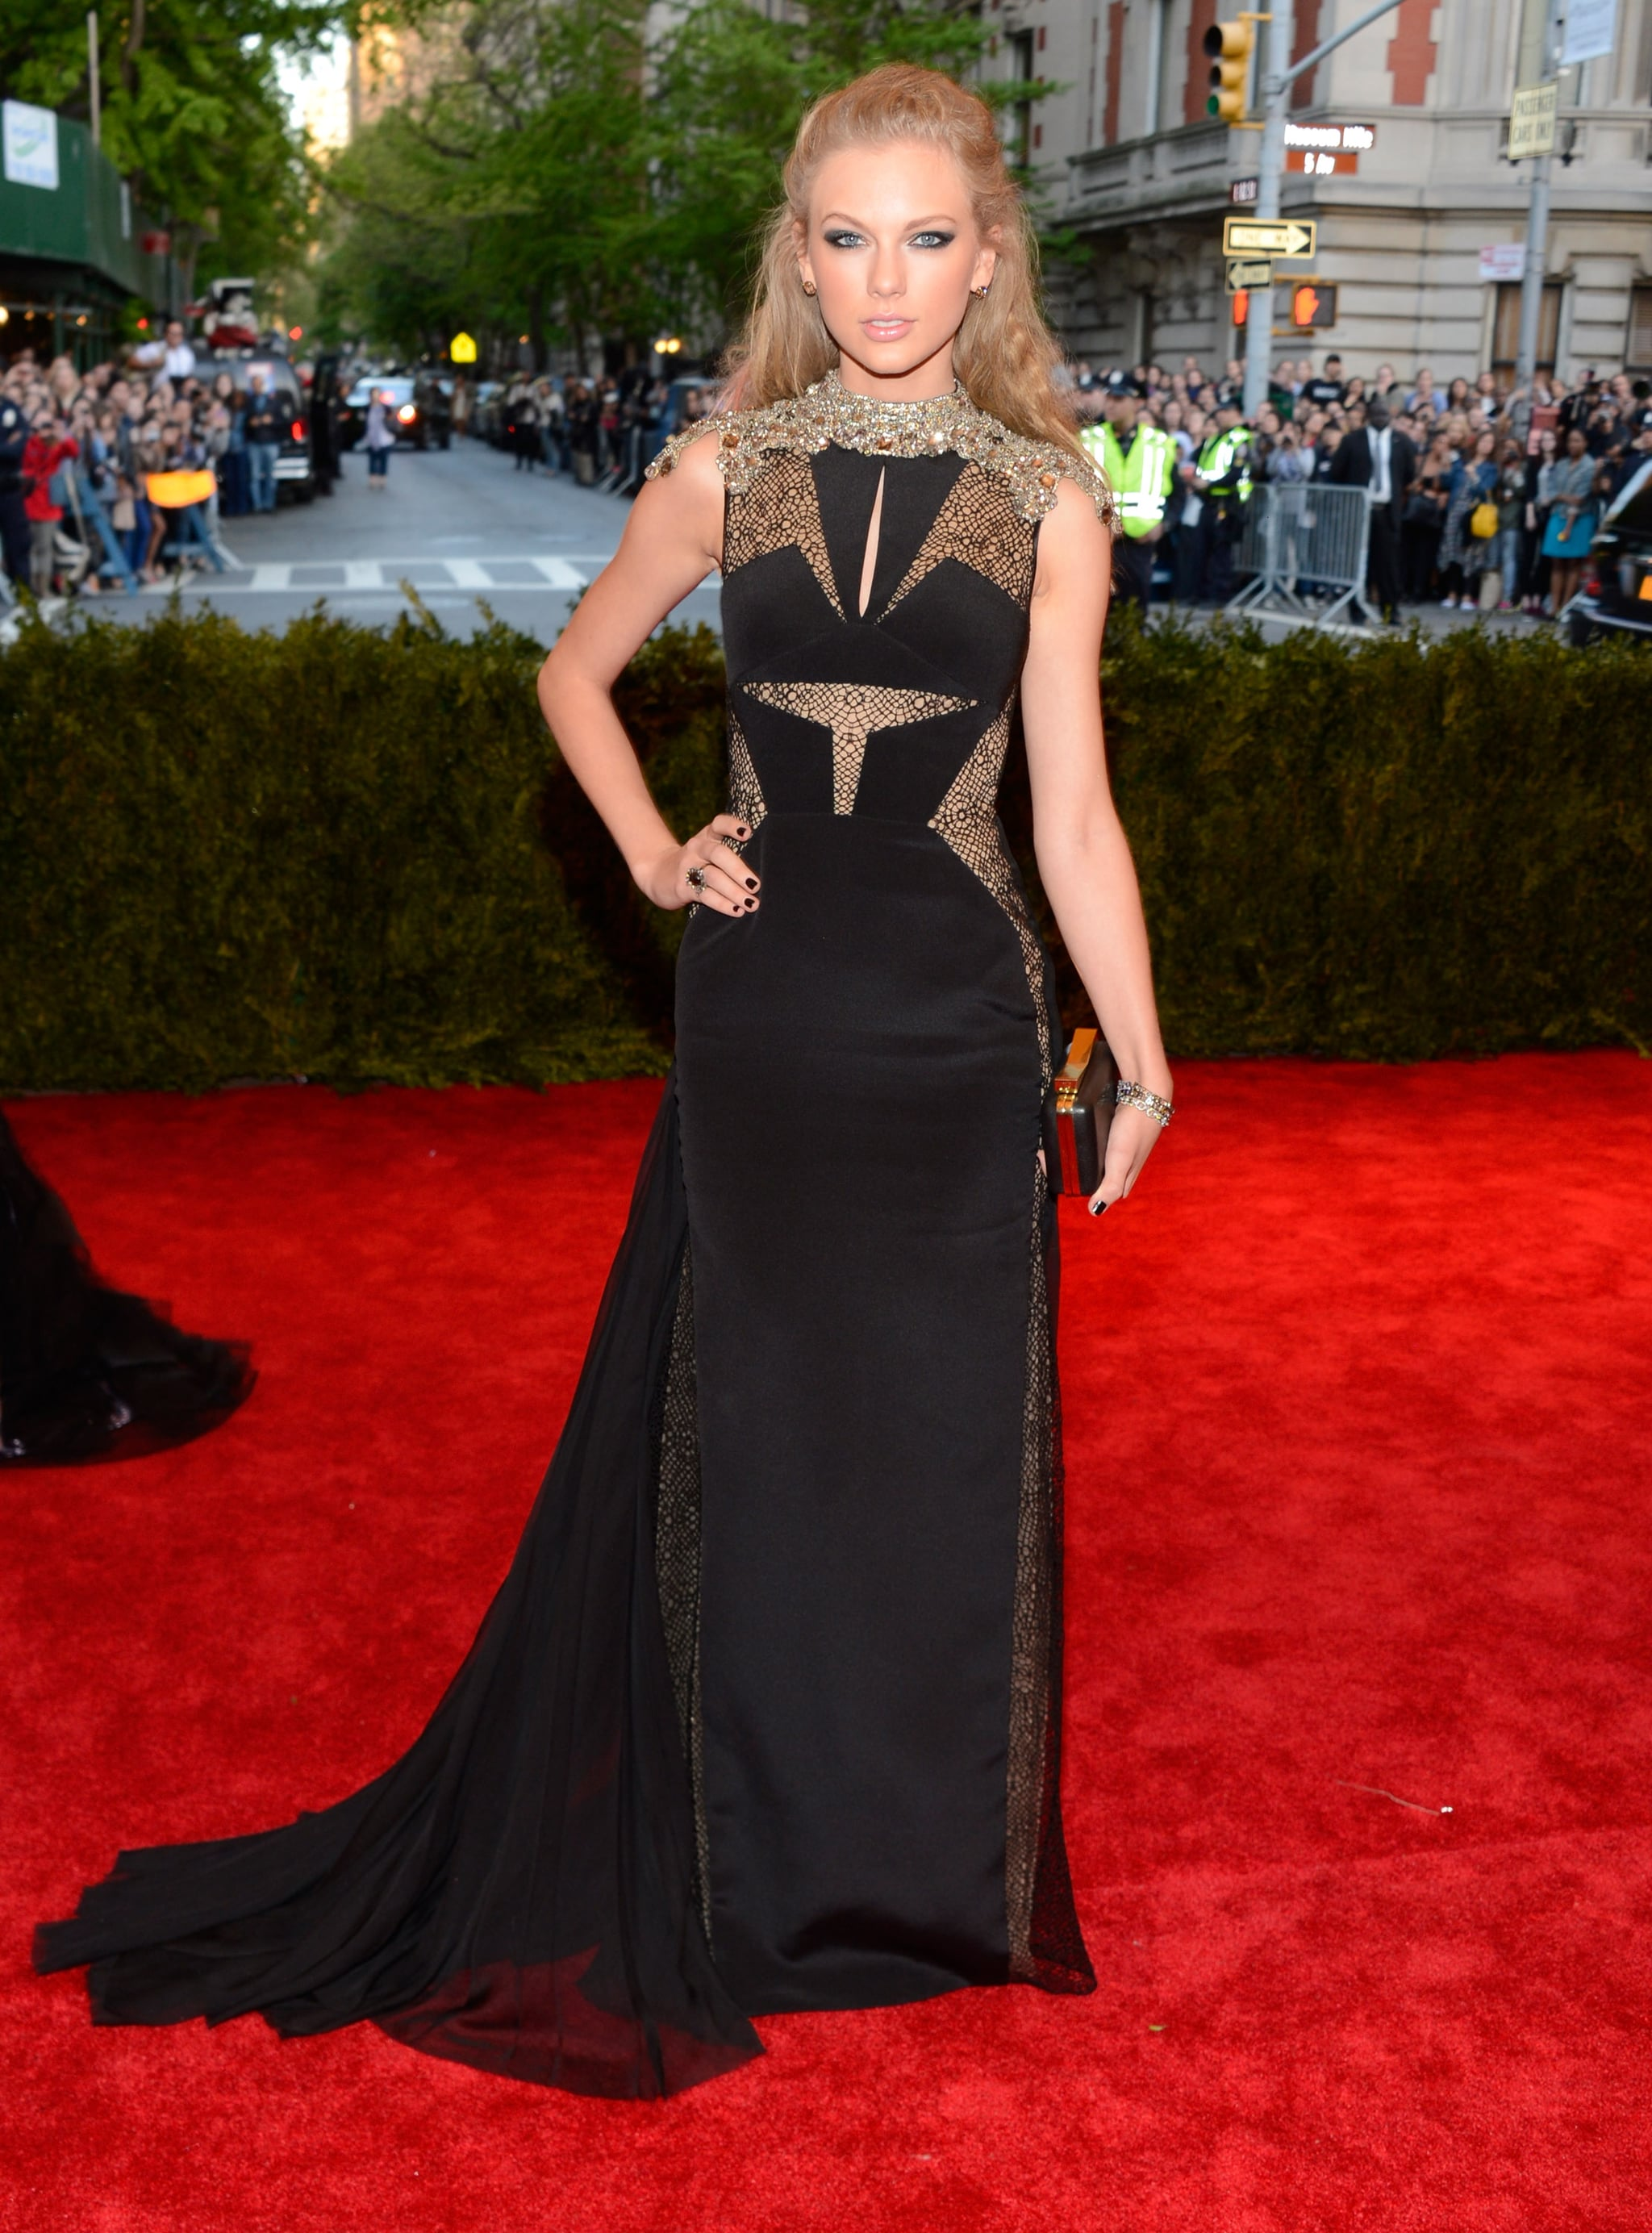 Taylor Swift At The Met Gala 2013 Taylor Swift Punks It Up For The Met Gala Popsugar Celebrity Photo 10